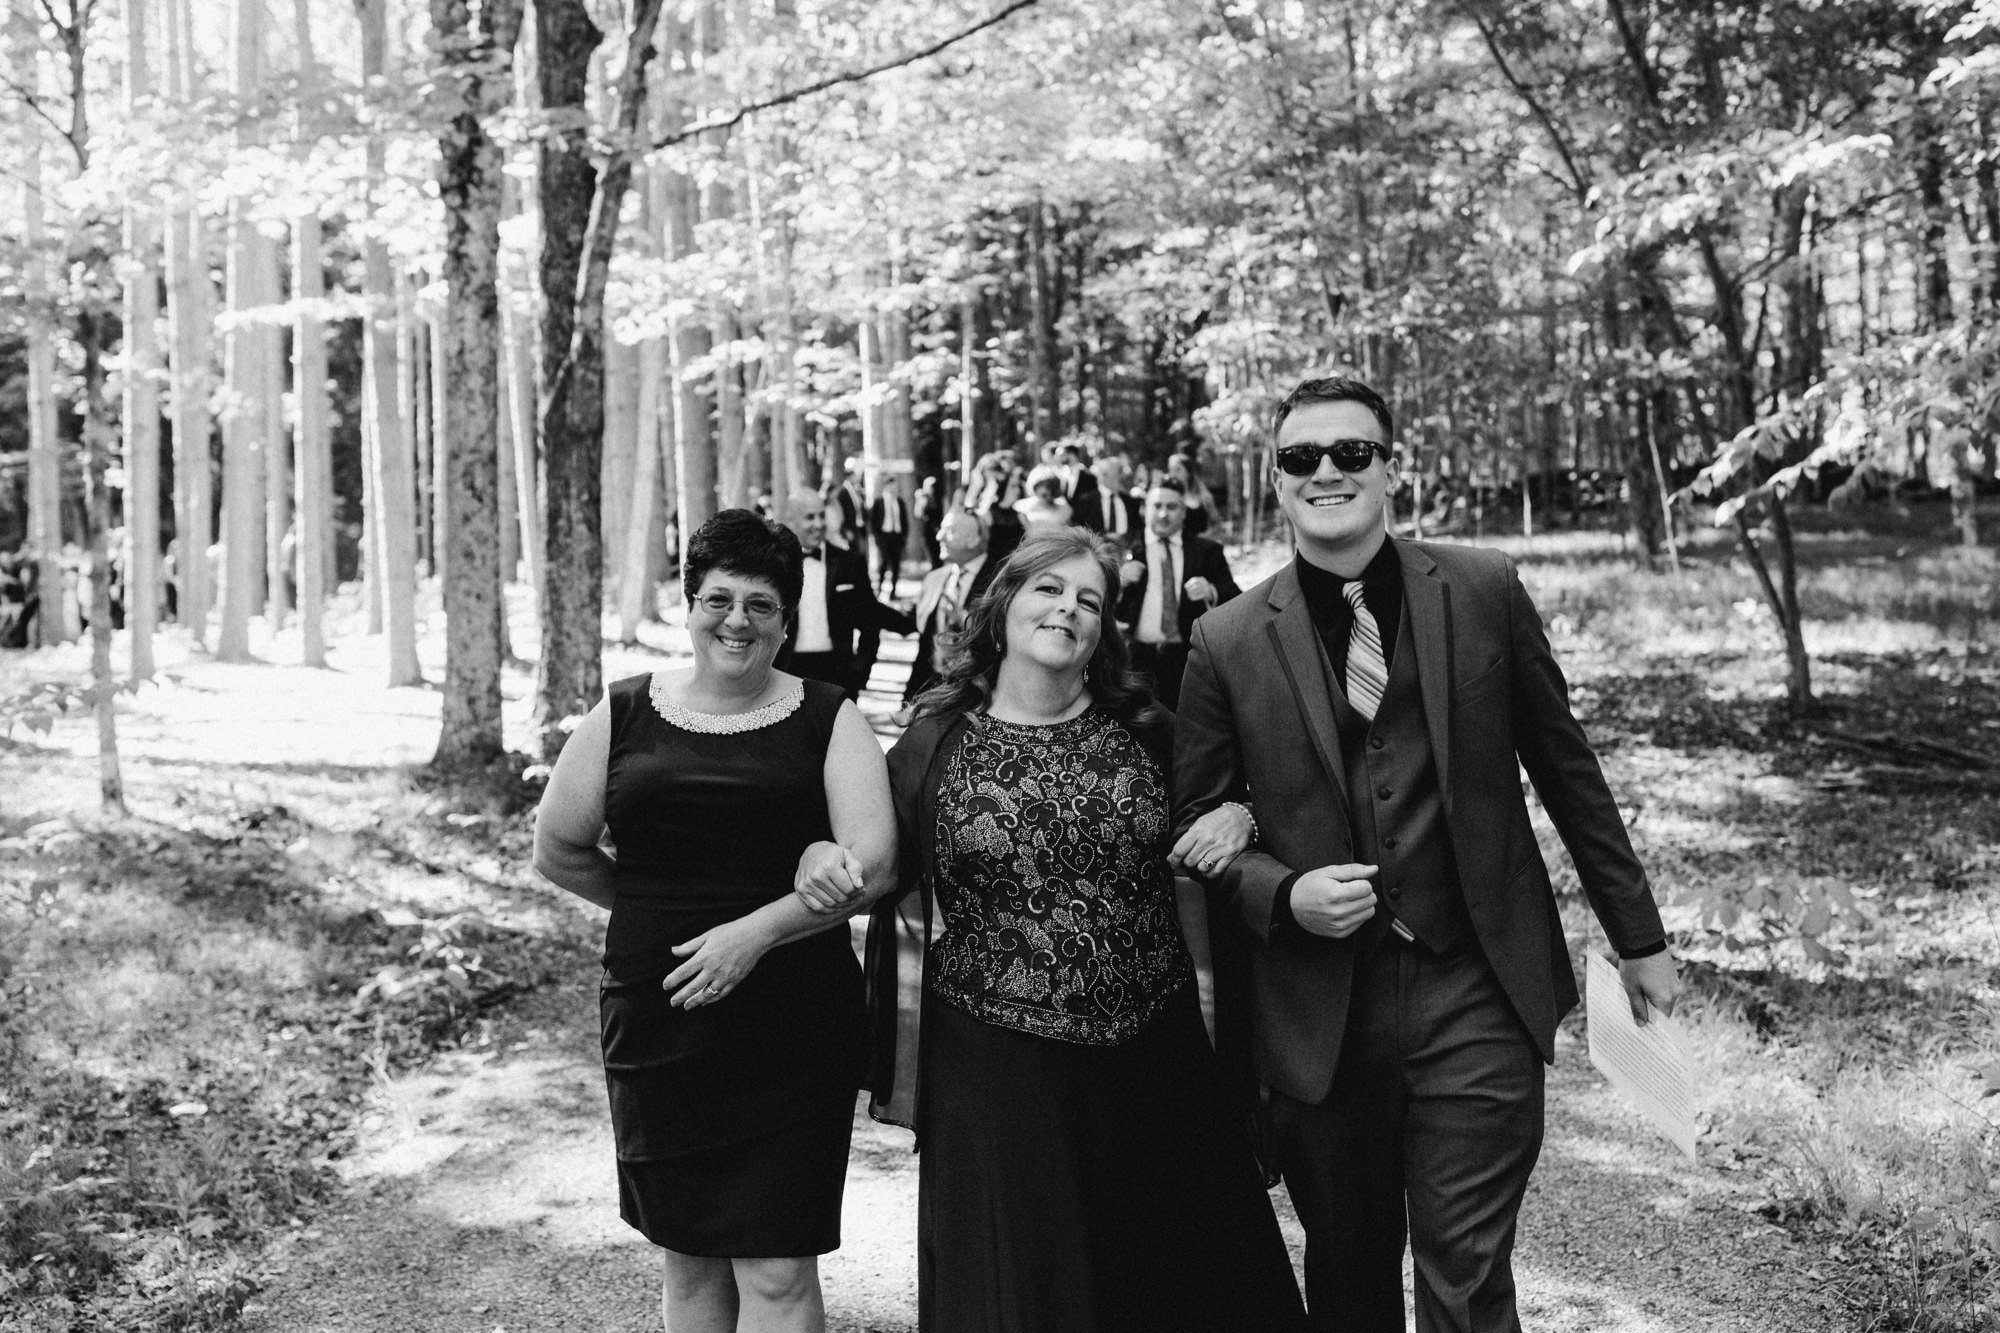 Guests at bride and groom walking back down the aisle at the Pine Grove location at Roxbury Barn Estate in the Catskills New York